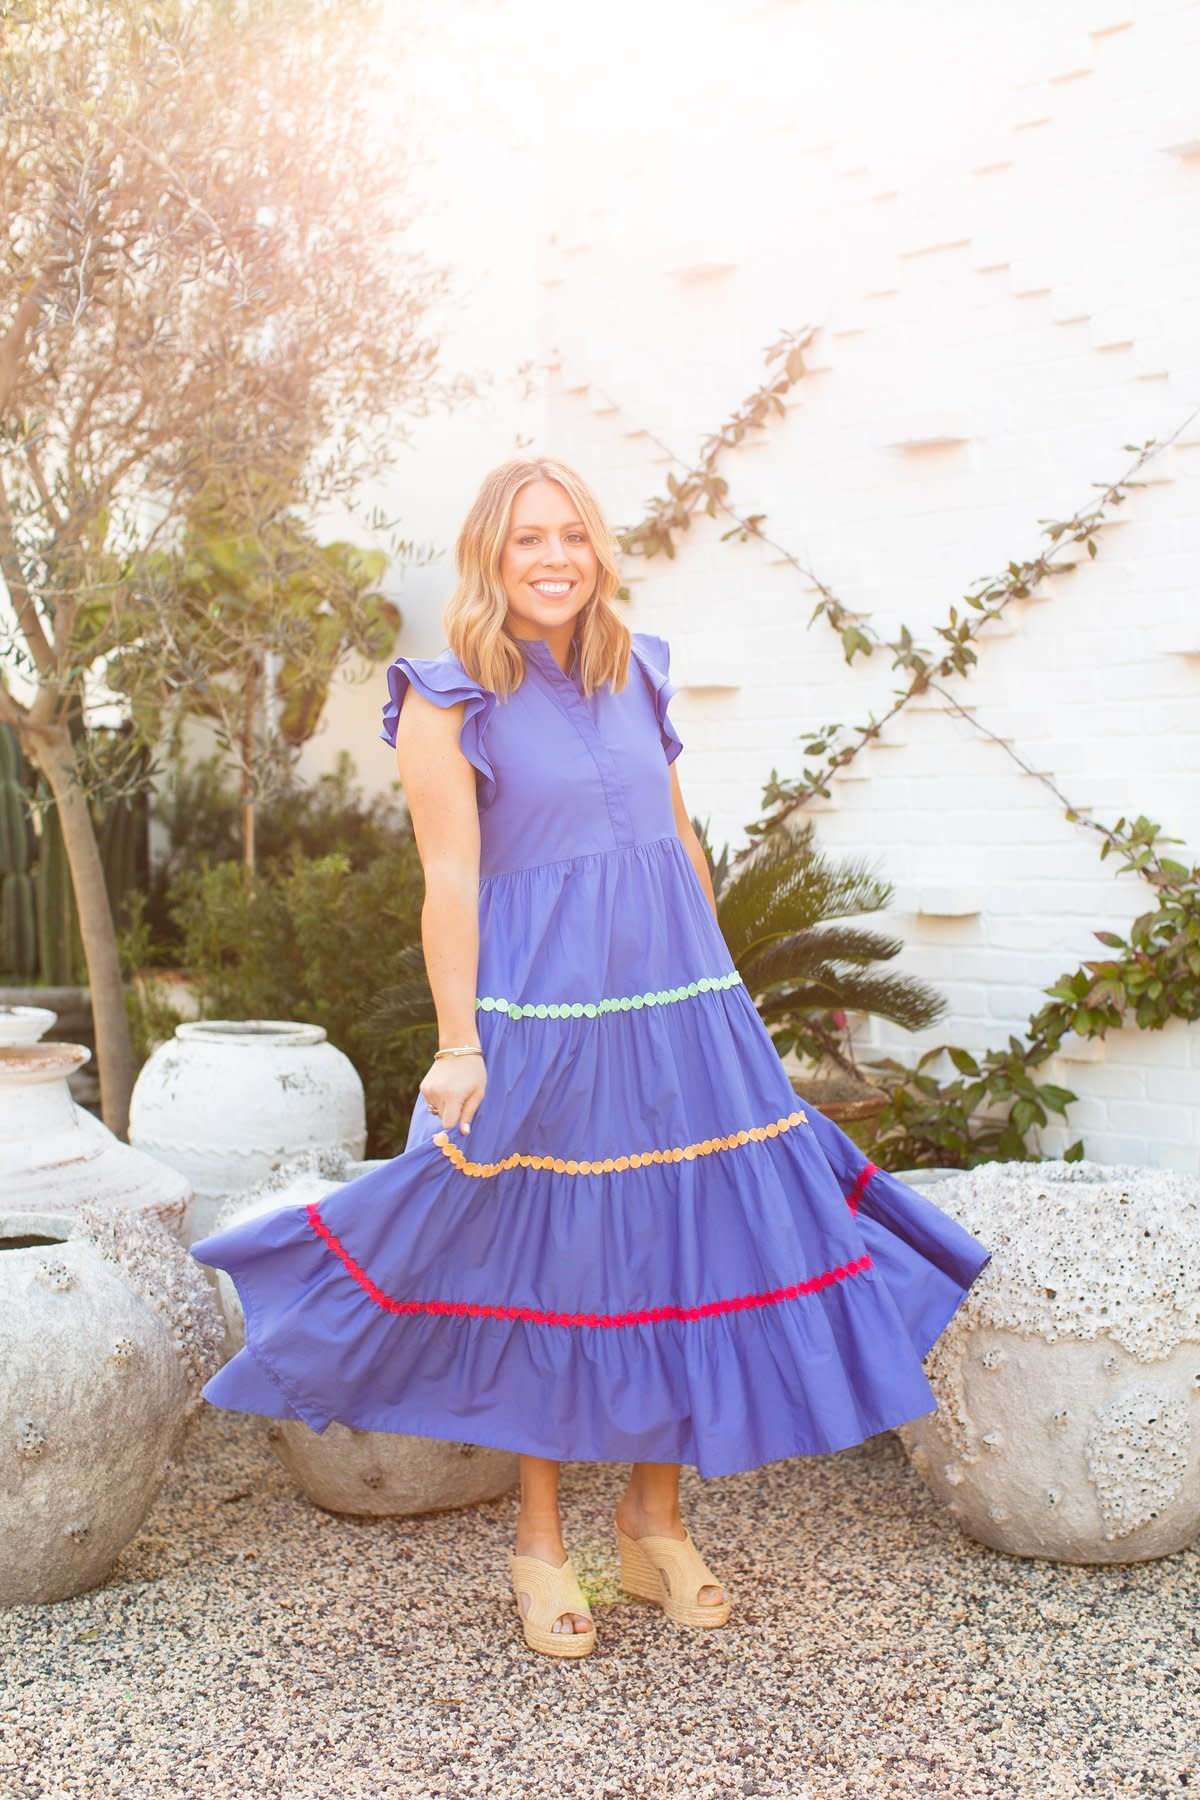 Crosby By Mollie Burch Napa Dress Blue Parrot